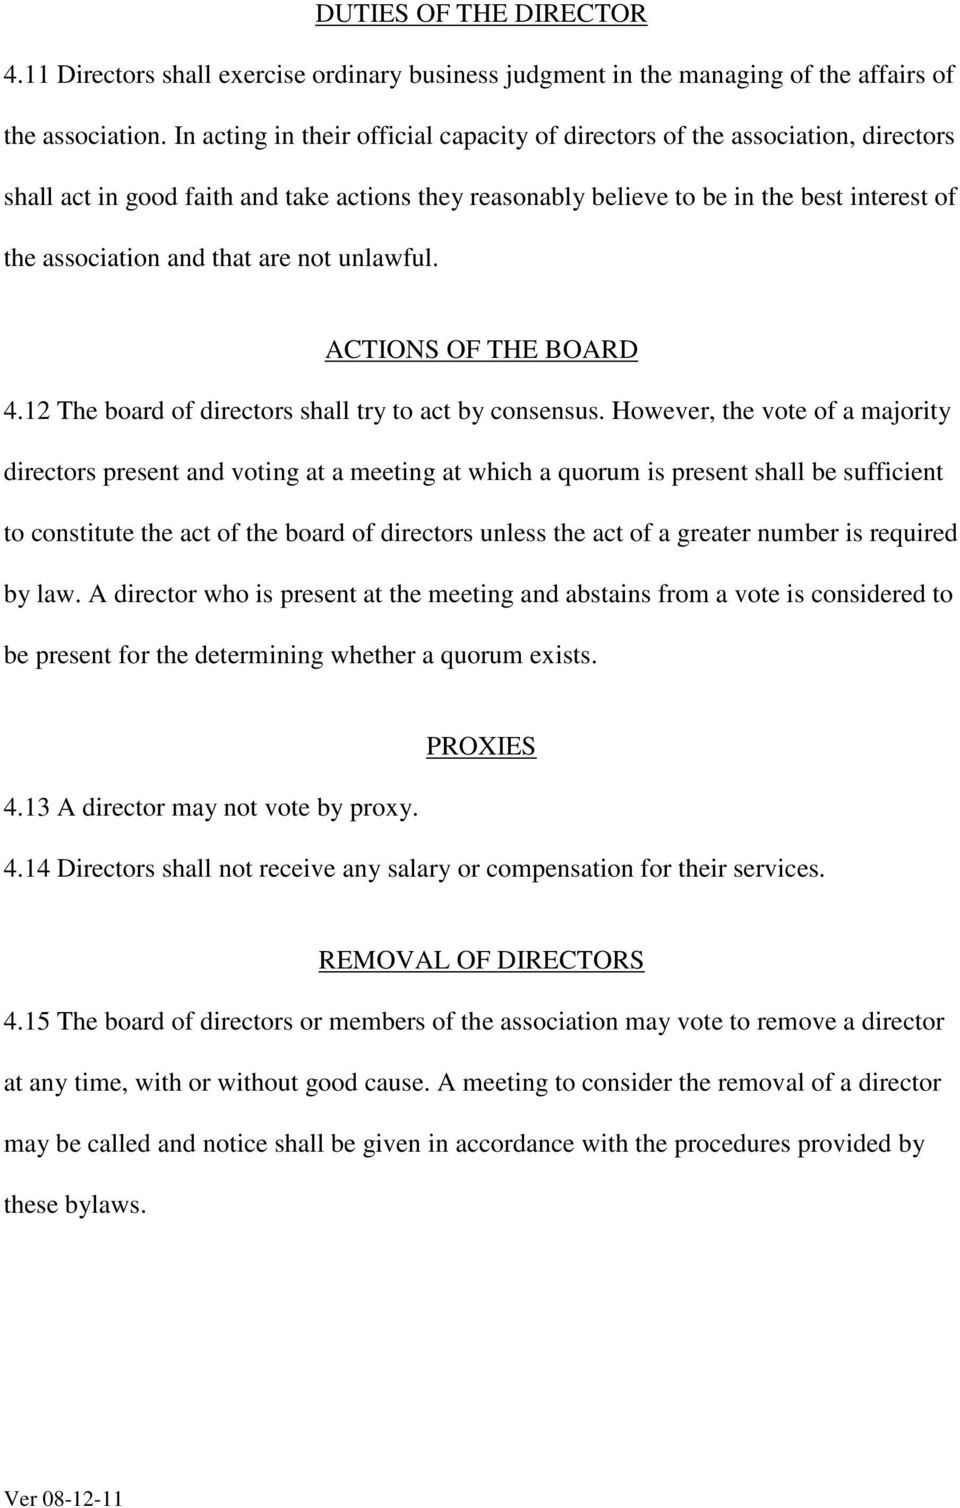 are not unlawful. ACTIONS OF THE BOARD 4.12 The board of directors shall try to act by consensus.